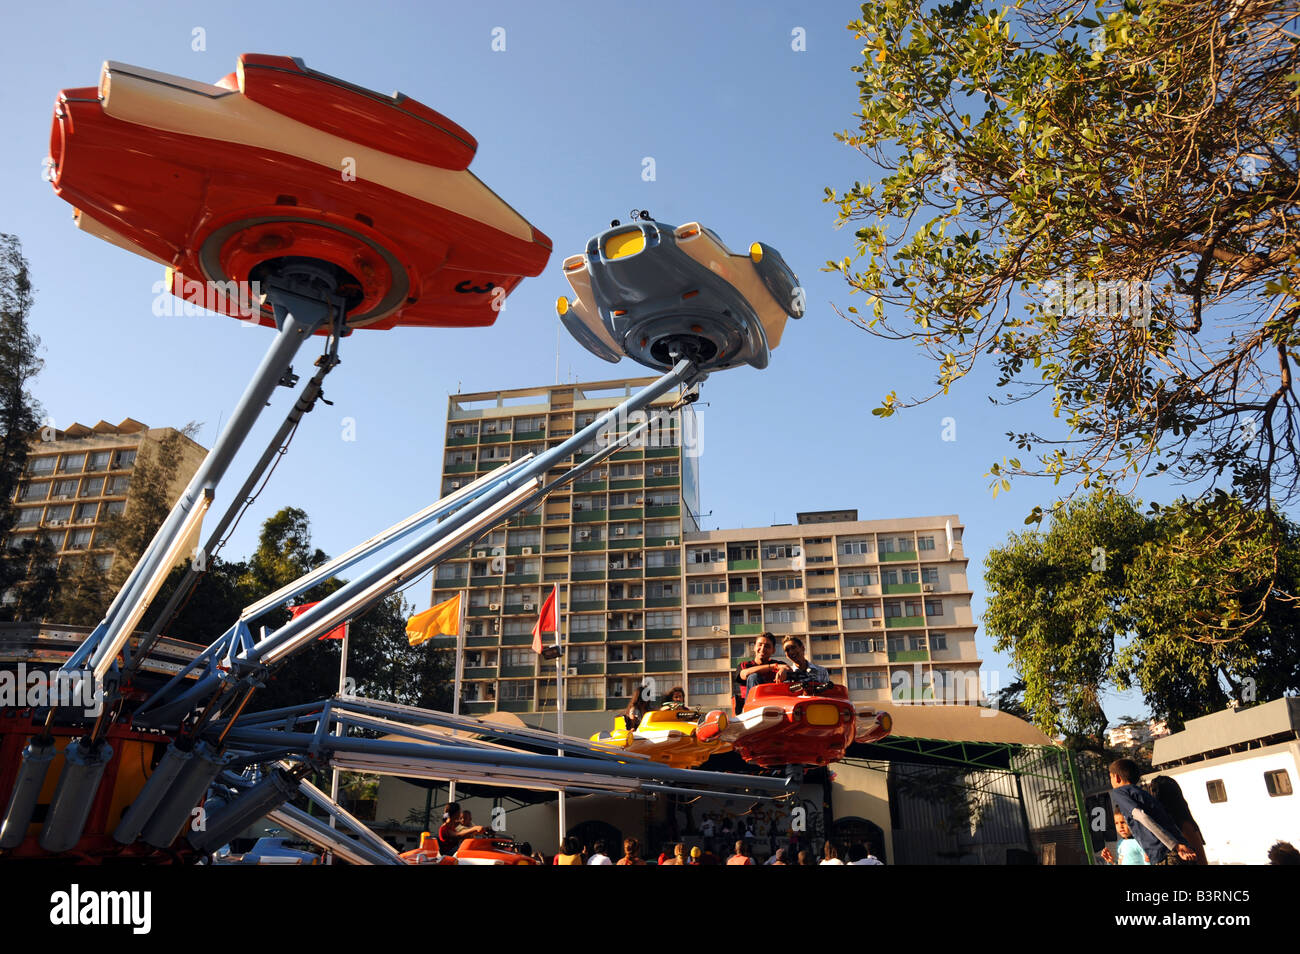 Enjoying rides on the fariground attractions at Feira Popular, Maputo, Mozambique - Stock Image